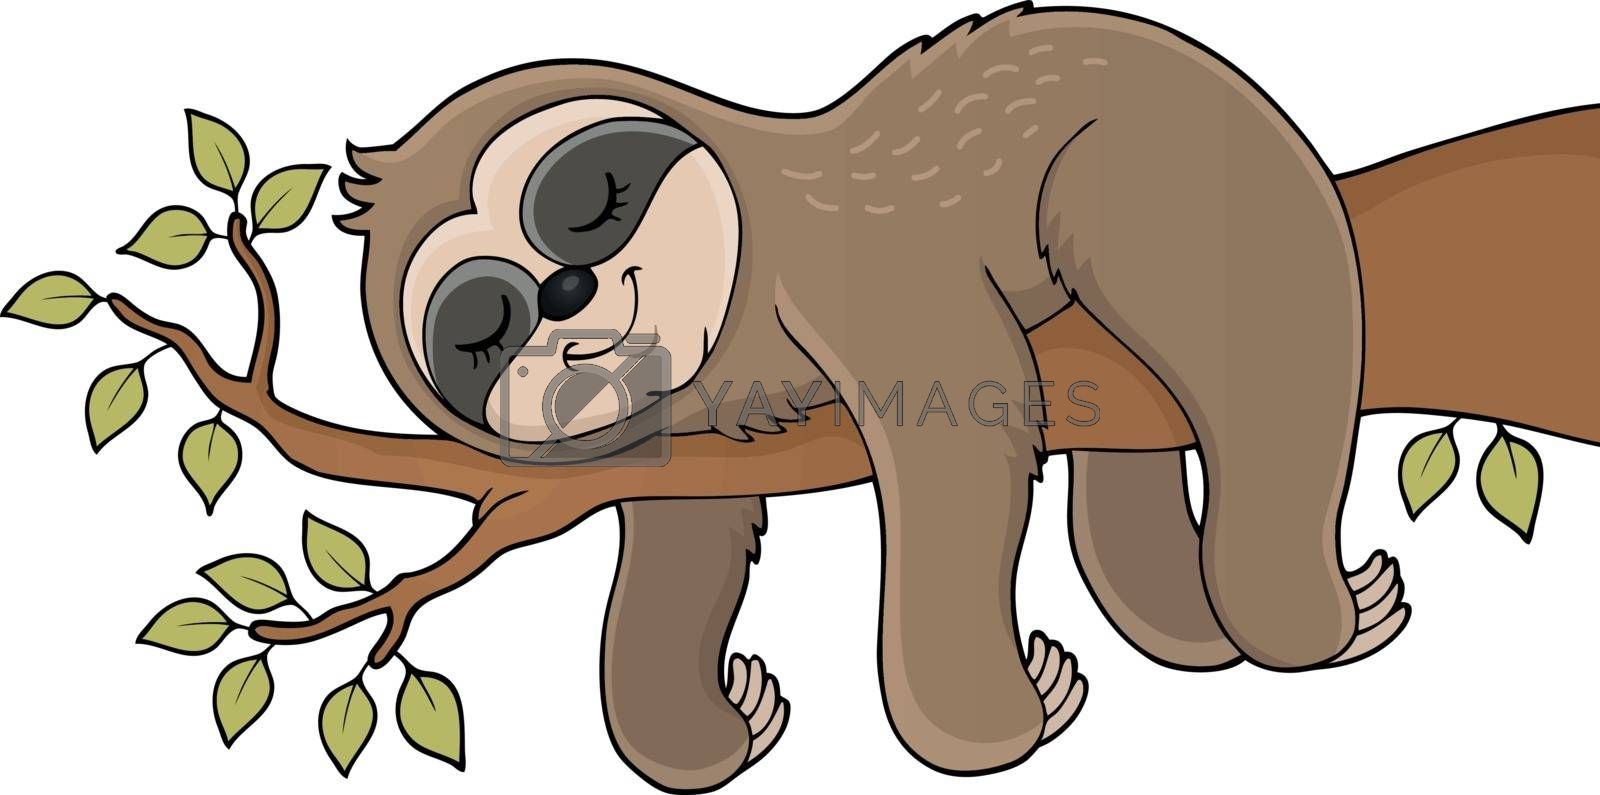 Sleeping sloth theme image 1 - eps10 vector illustration.